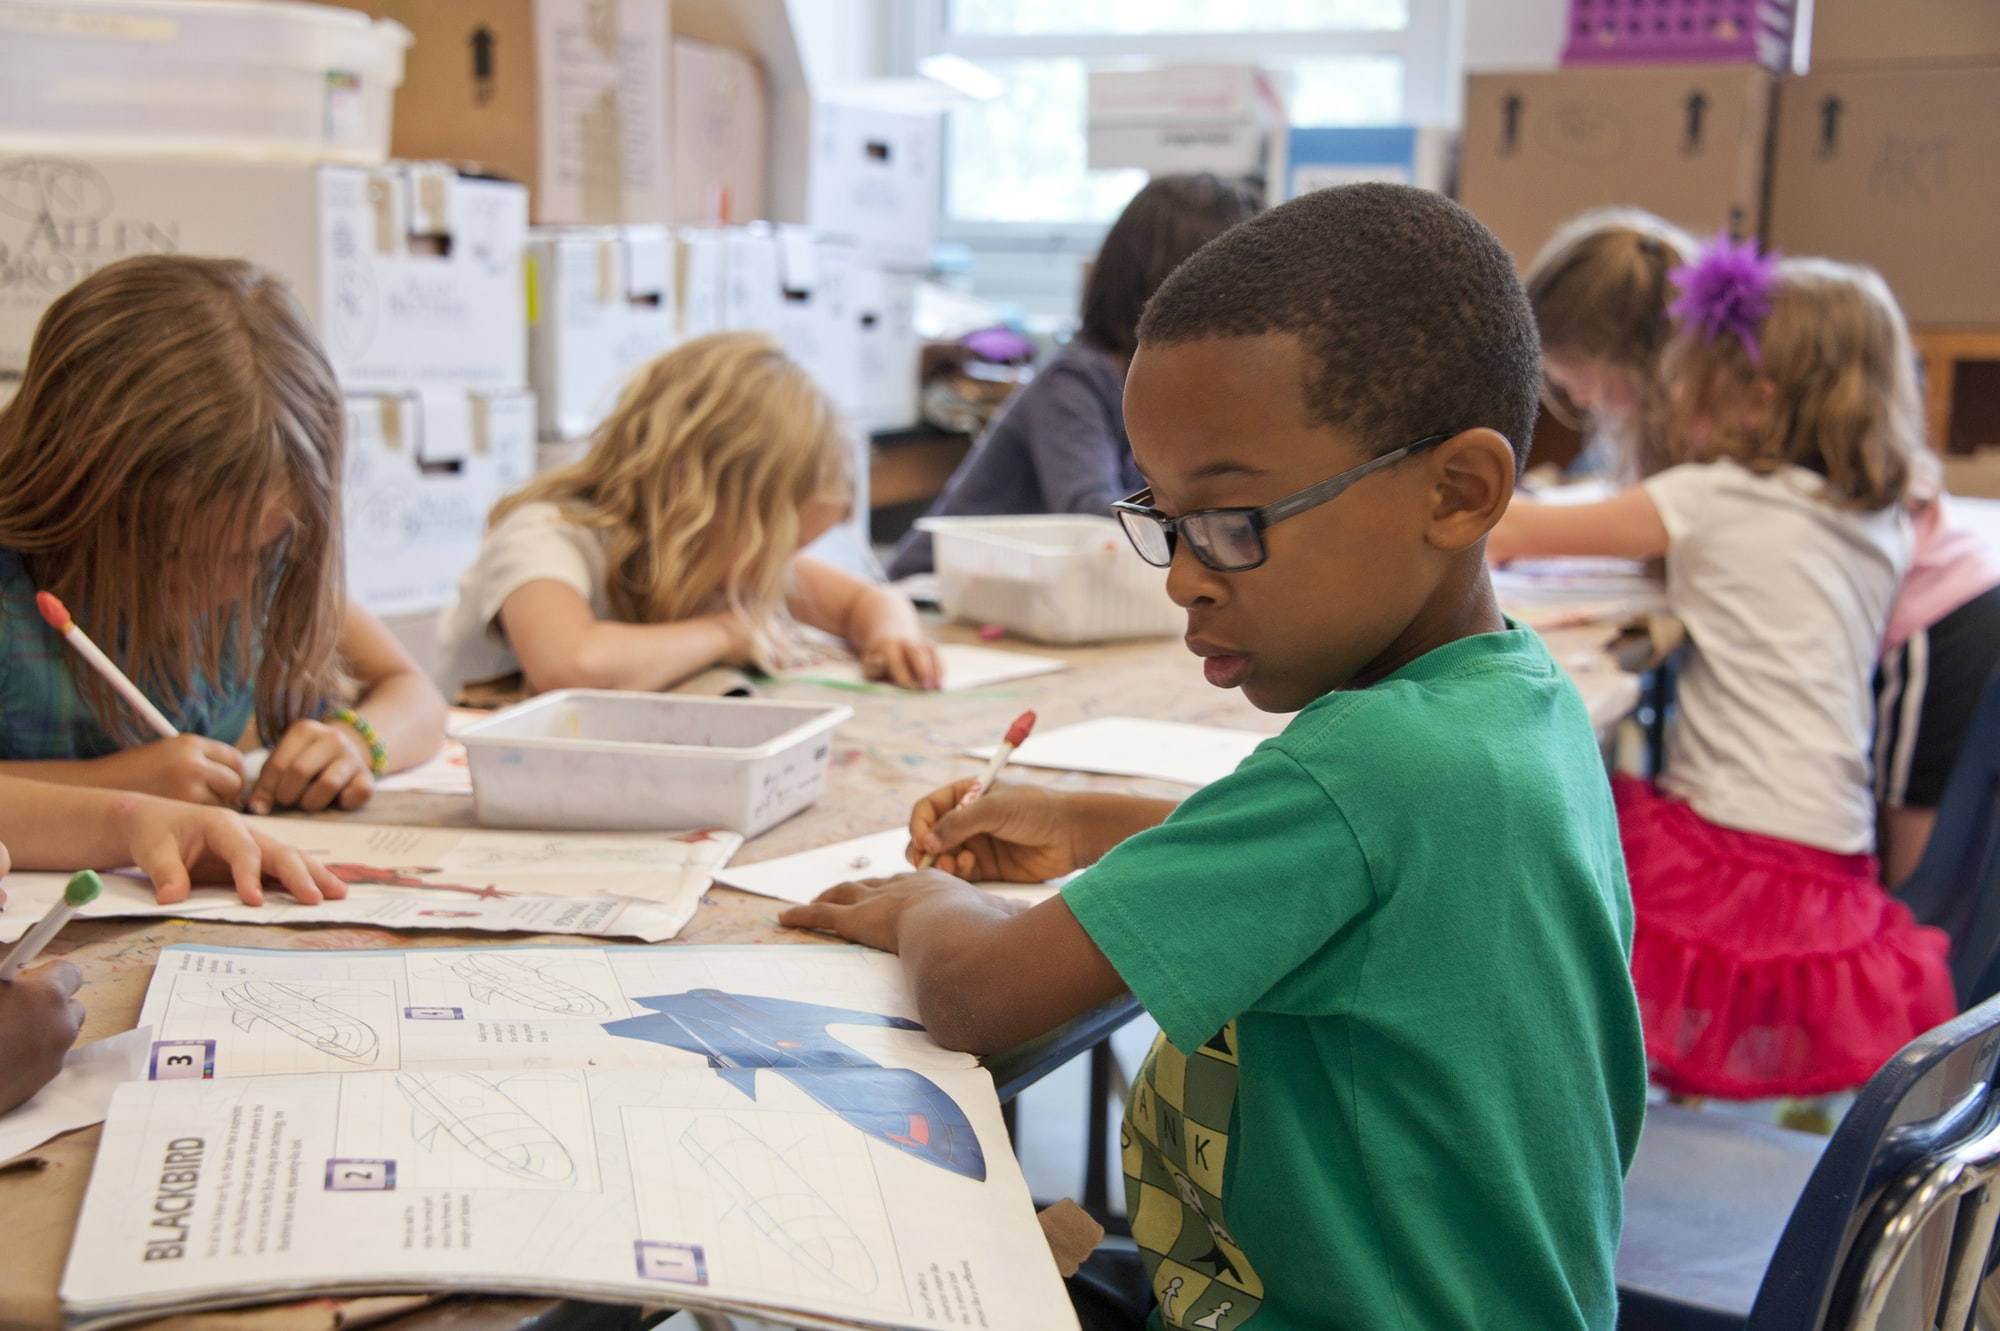 Captured in a metropolitan Atlanta, Georgia primary school, seated amongst his classmates, this photograph depicts a young African-American schoolboy who was in the process of drawing with a pencil on a piece of white paper. Note that the student was focused on a drawing book that referenced fantasy flying planes, while intent on creating his artwork, seemingly oblivious to all the classroom goings-on that surrounded him. It is important to know that objects, including pencils, crayons, paper, etc., are known as fomites, and can act as transmitters of illnesses.